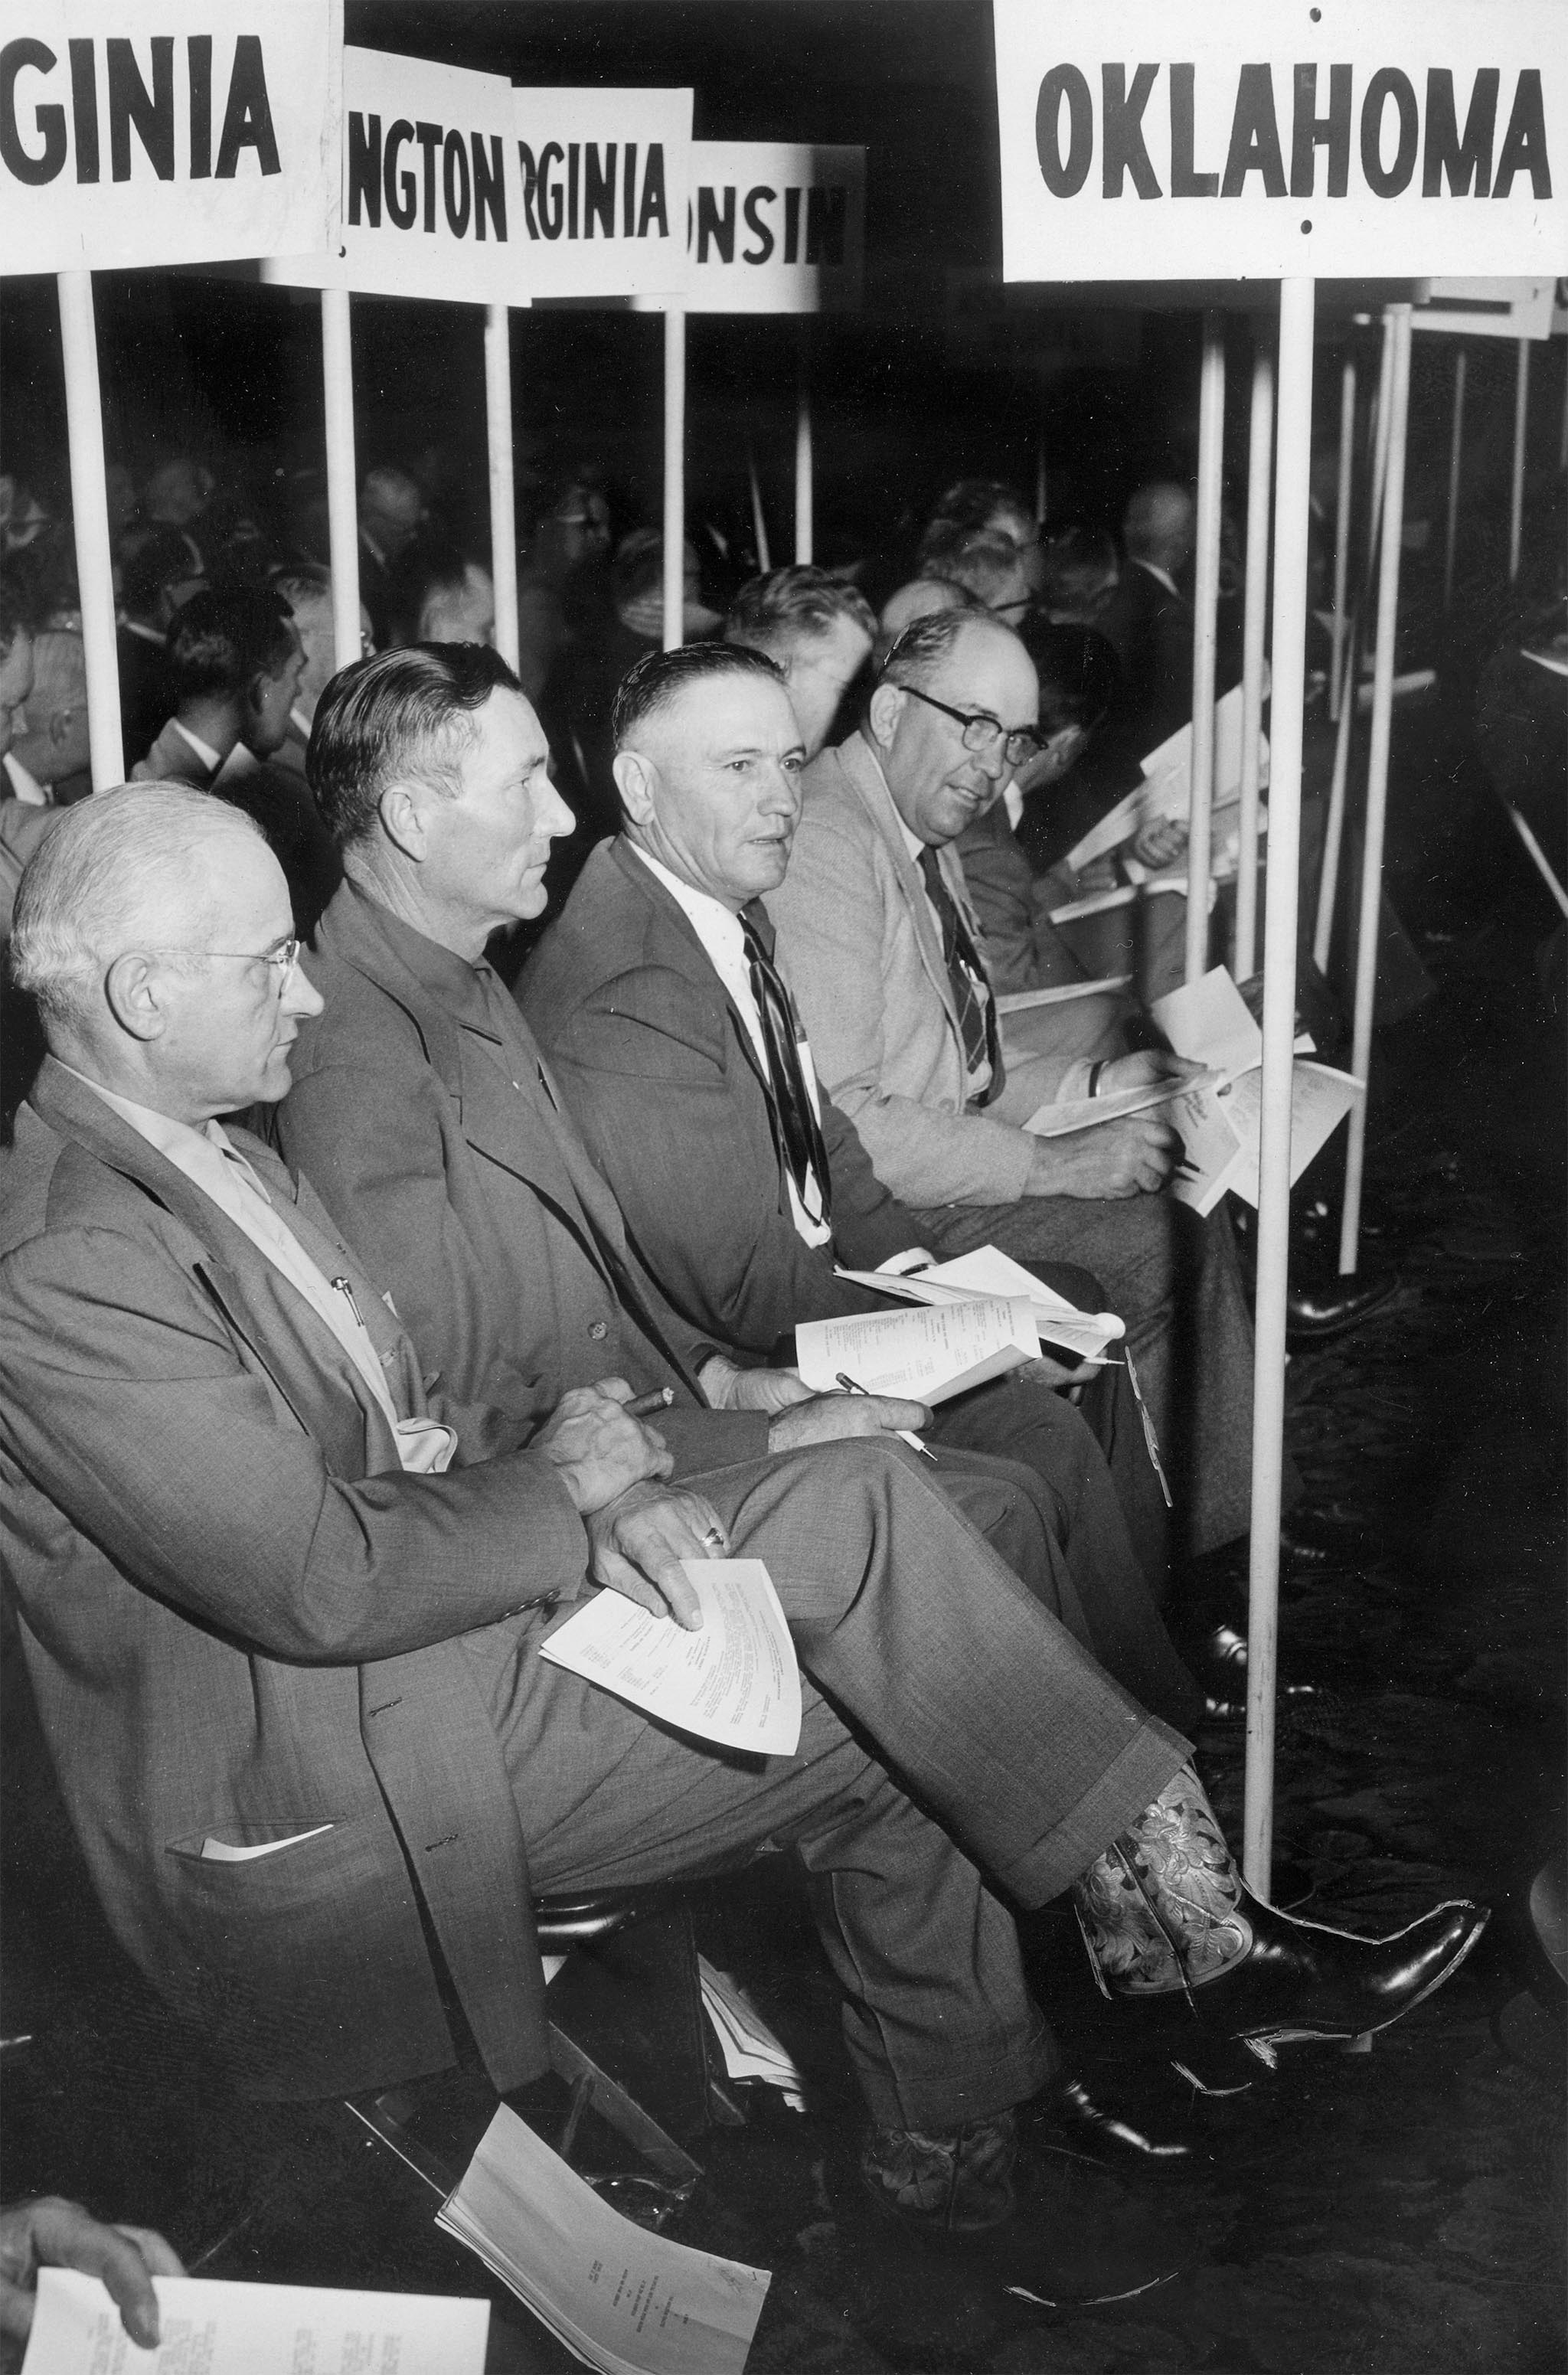 Oklahoma delegates at the 1953 American Farm Bureau Federation's Convention